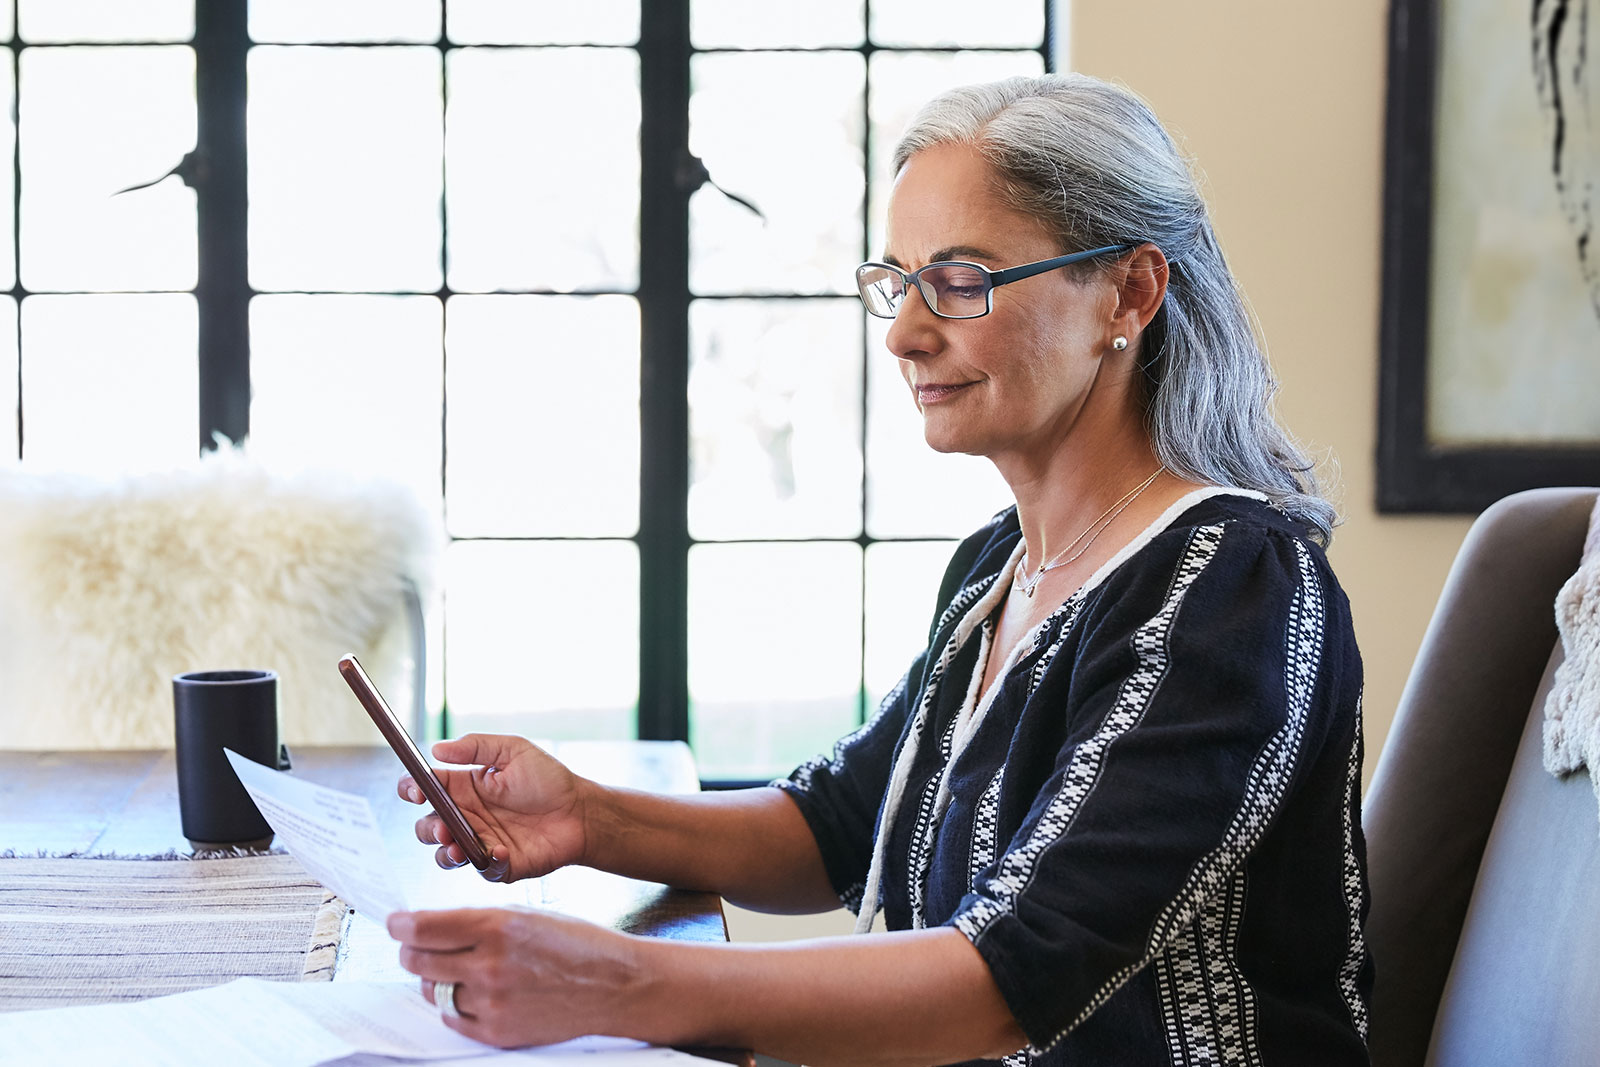 Mature Woman Sitting at Table with Paperwork